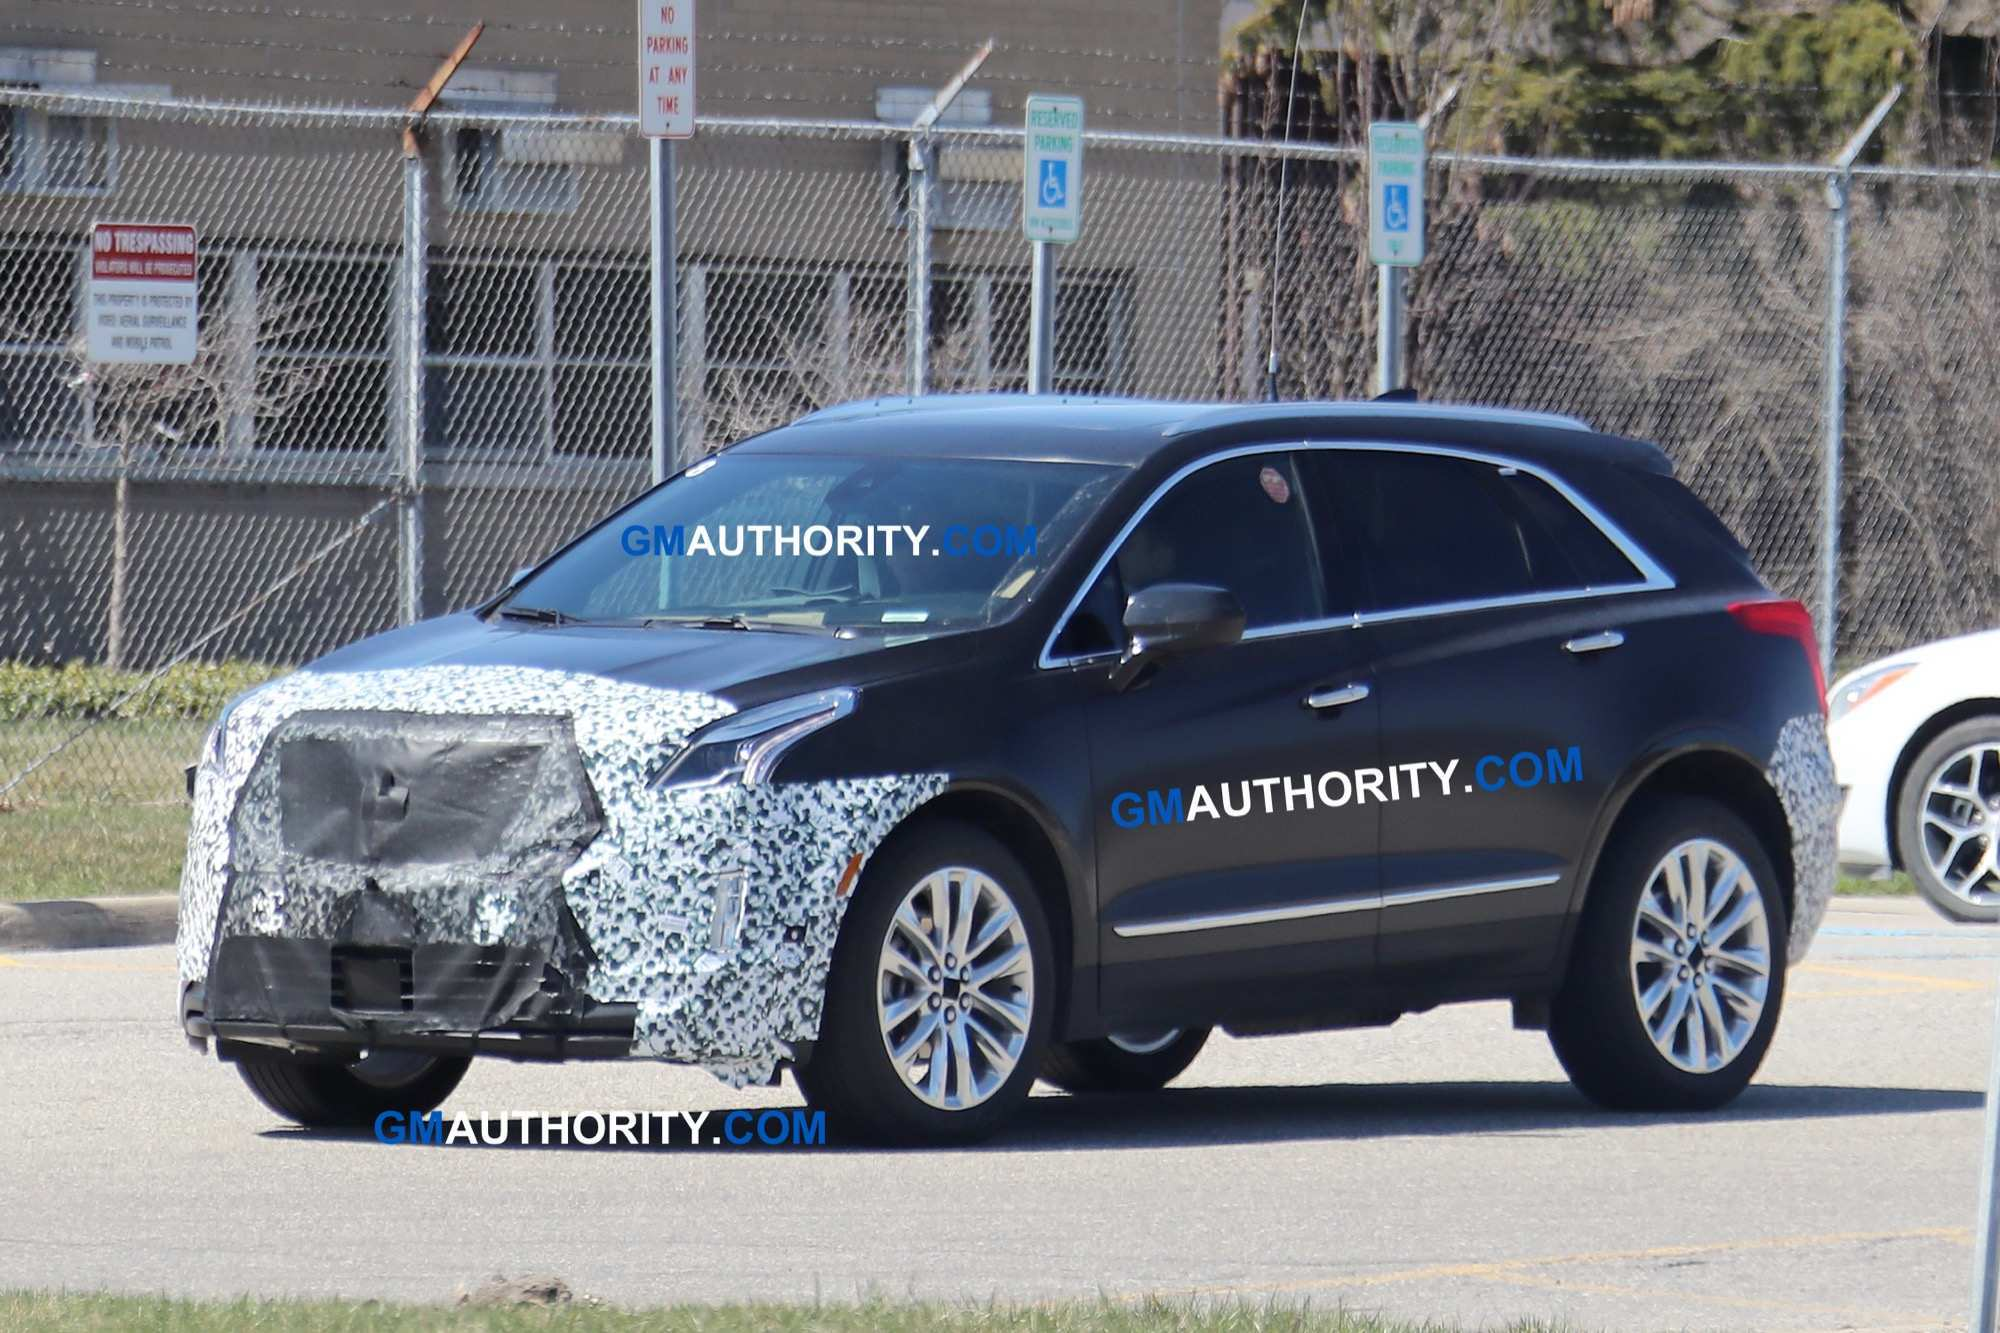 39 Great New Cadillac Xt5 2020 Picture with New Cadillac Xt5 2020